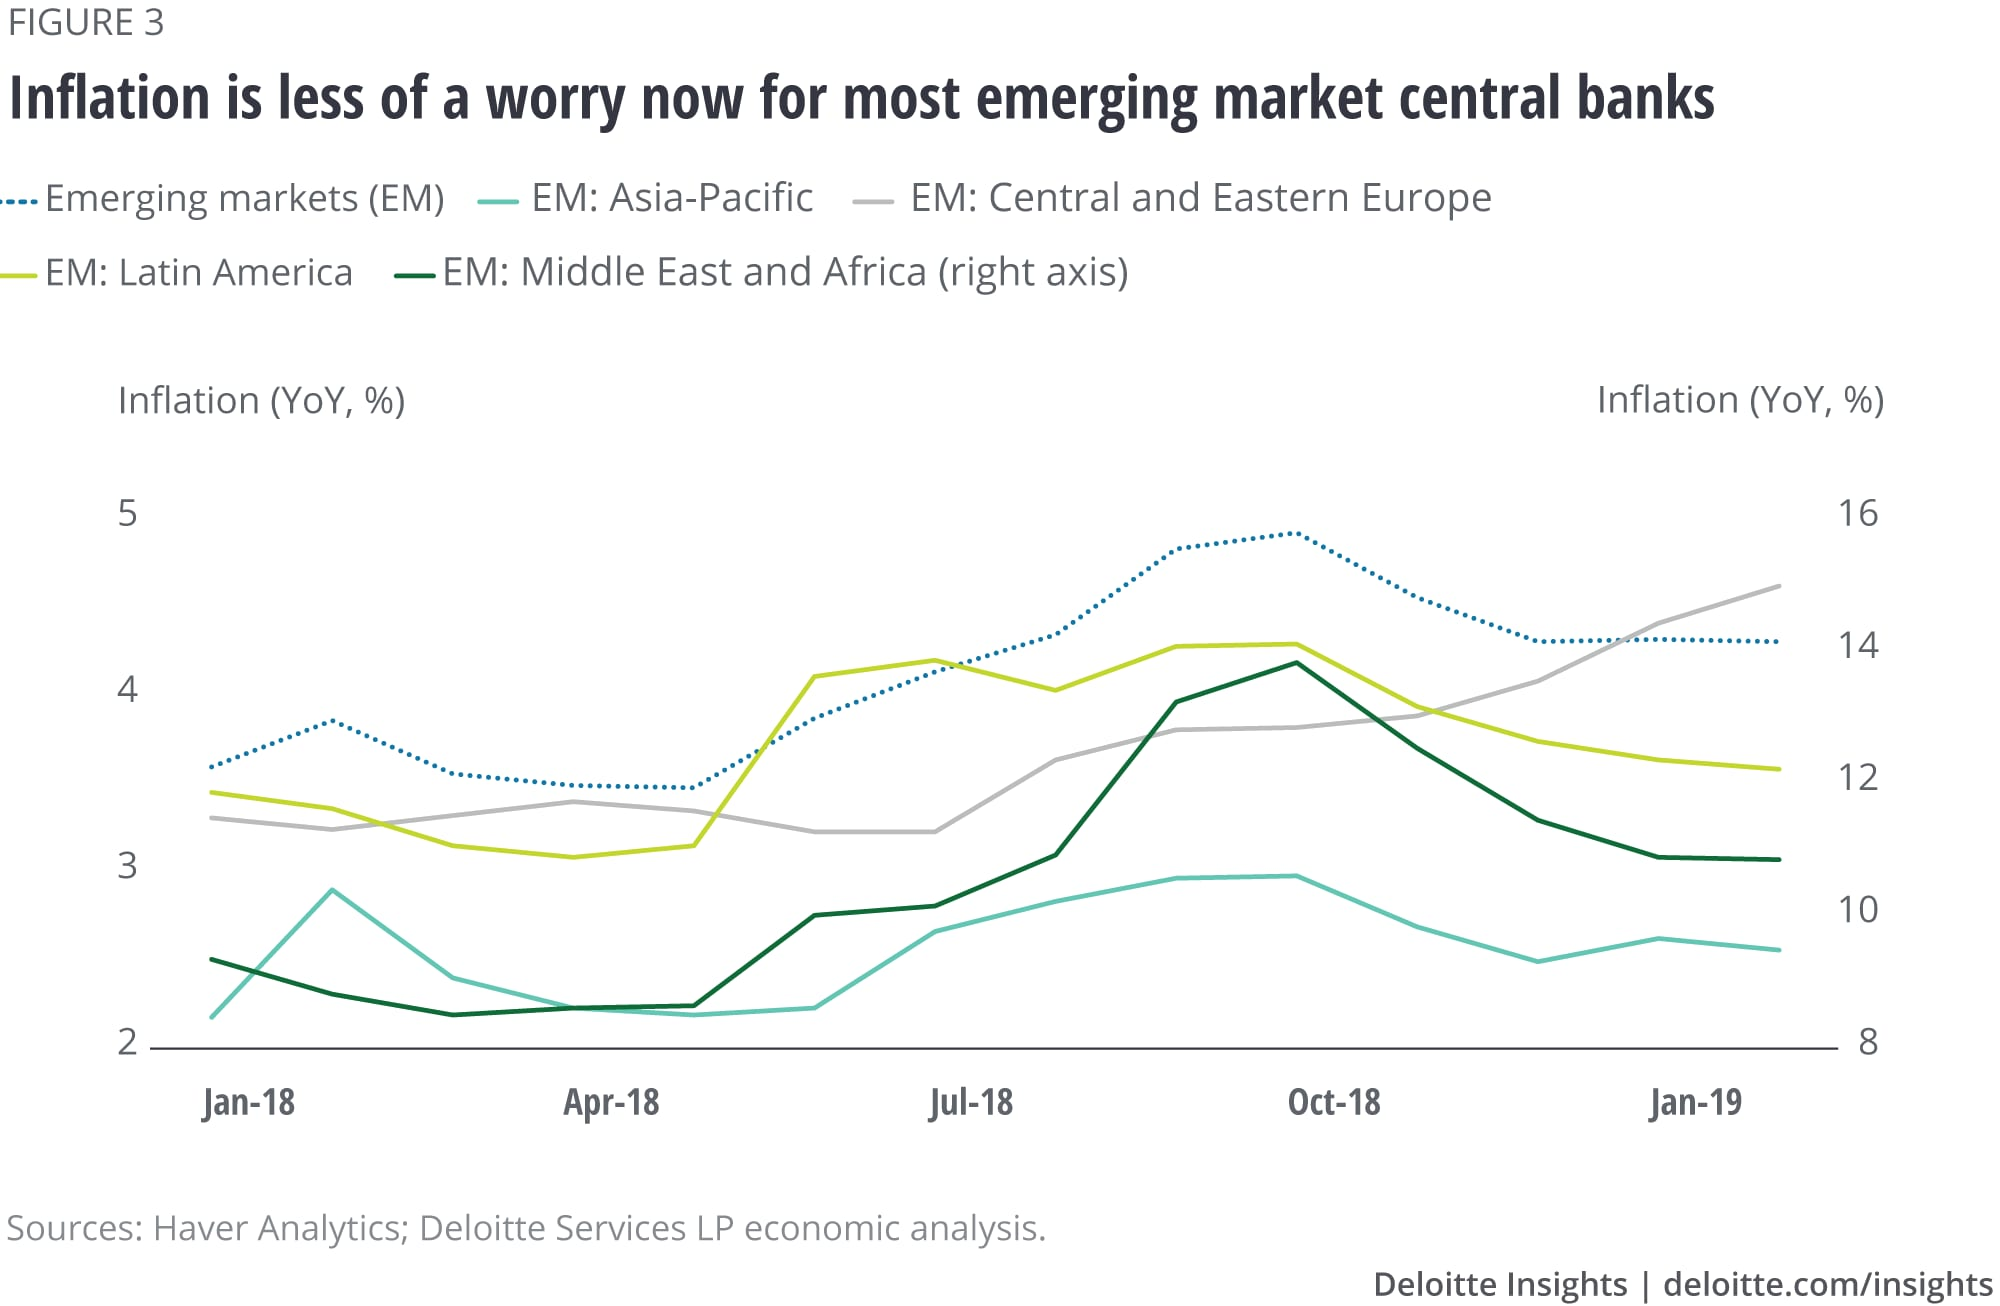 Inflation is less of a worry now for most emerging market central banks